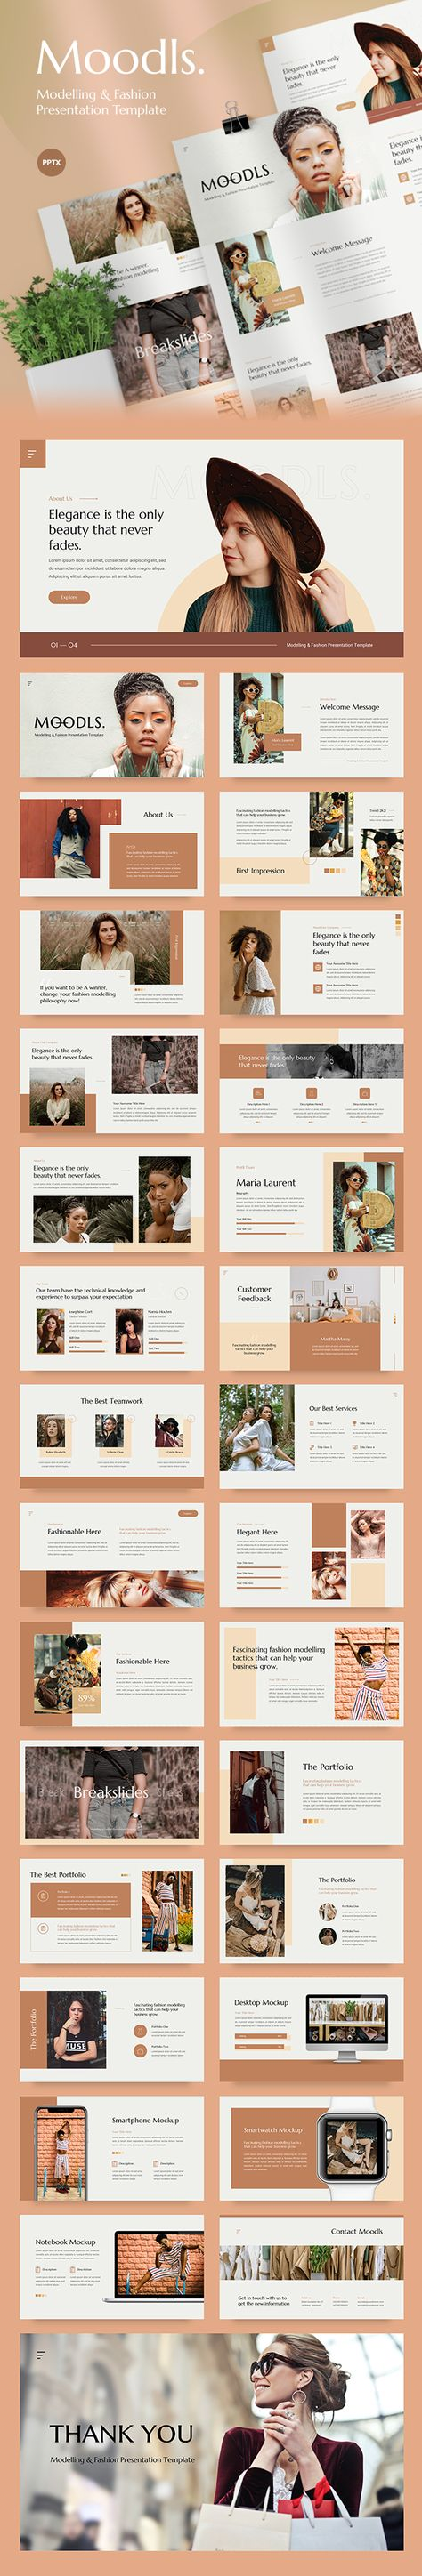 Moodls - Modelling & Fashion PowerPoint Template